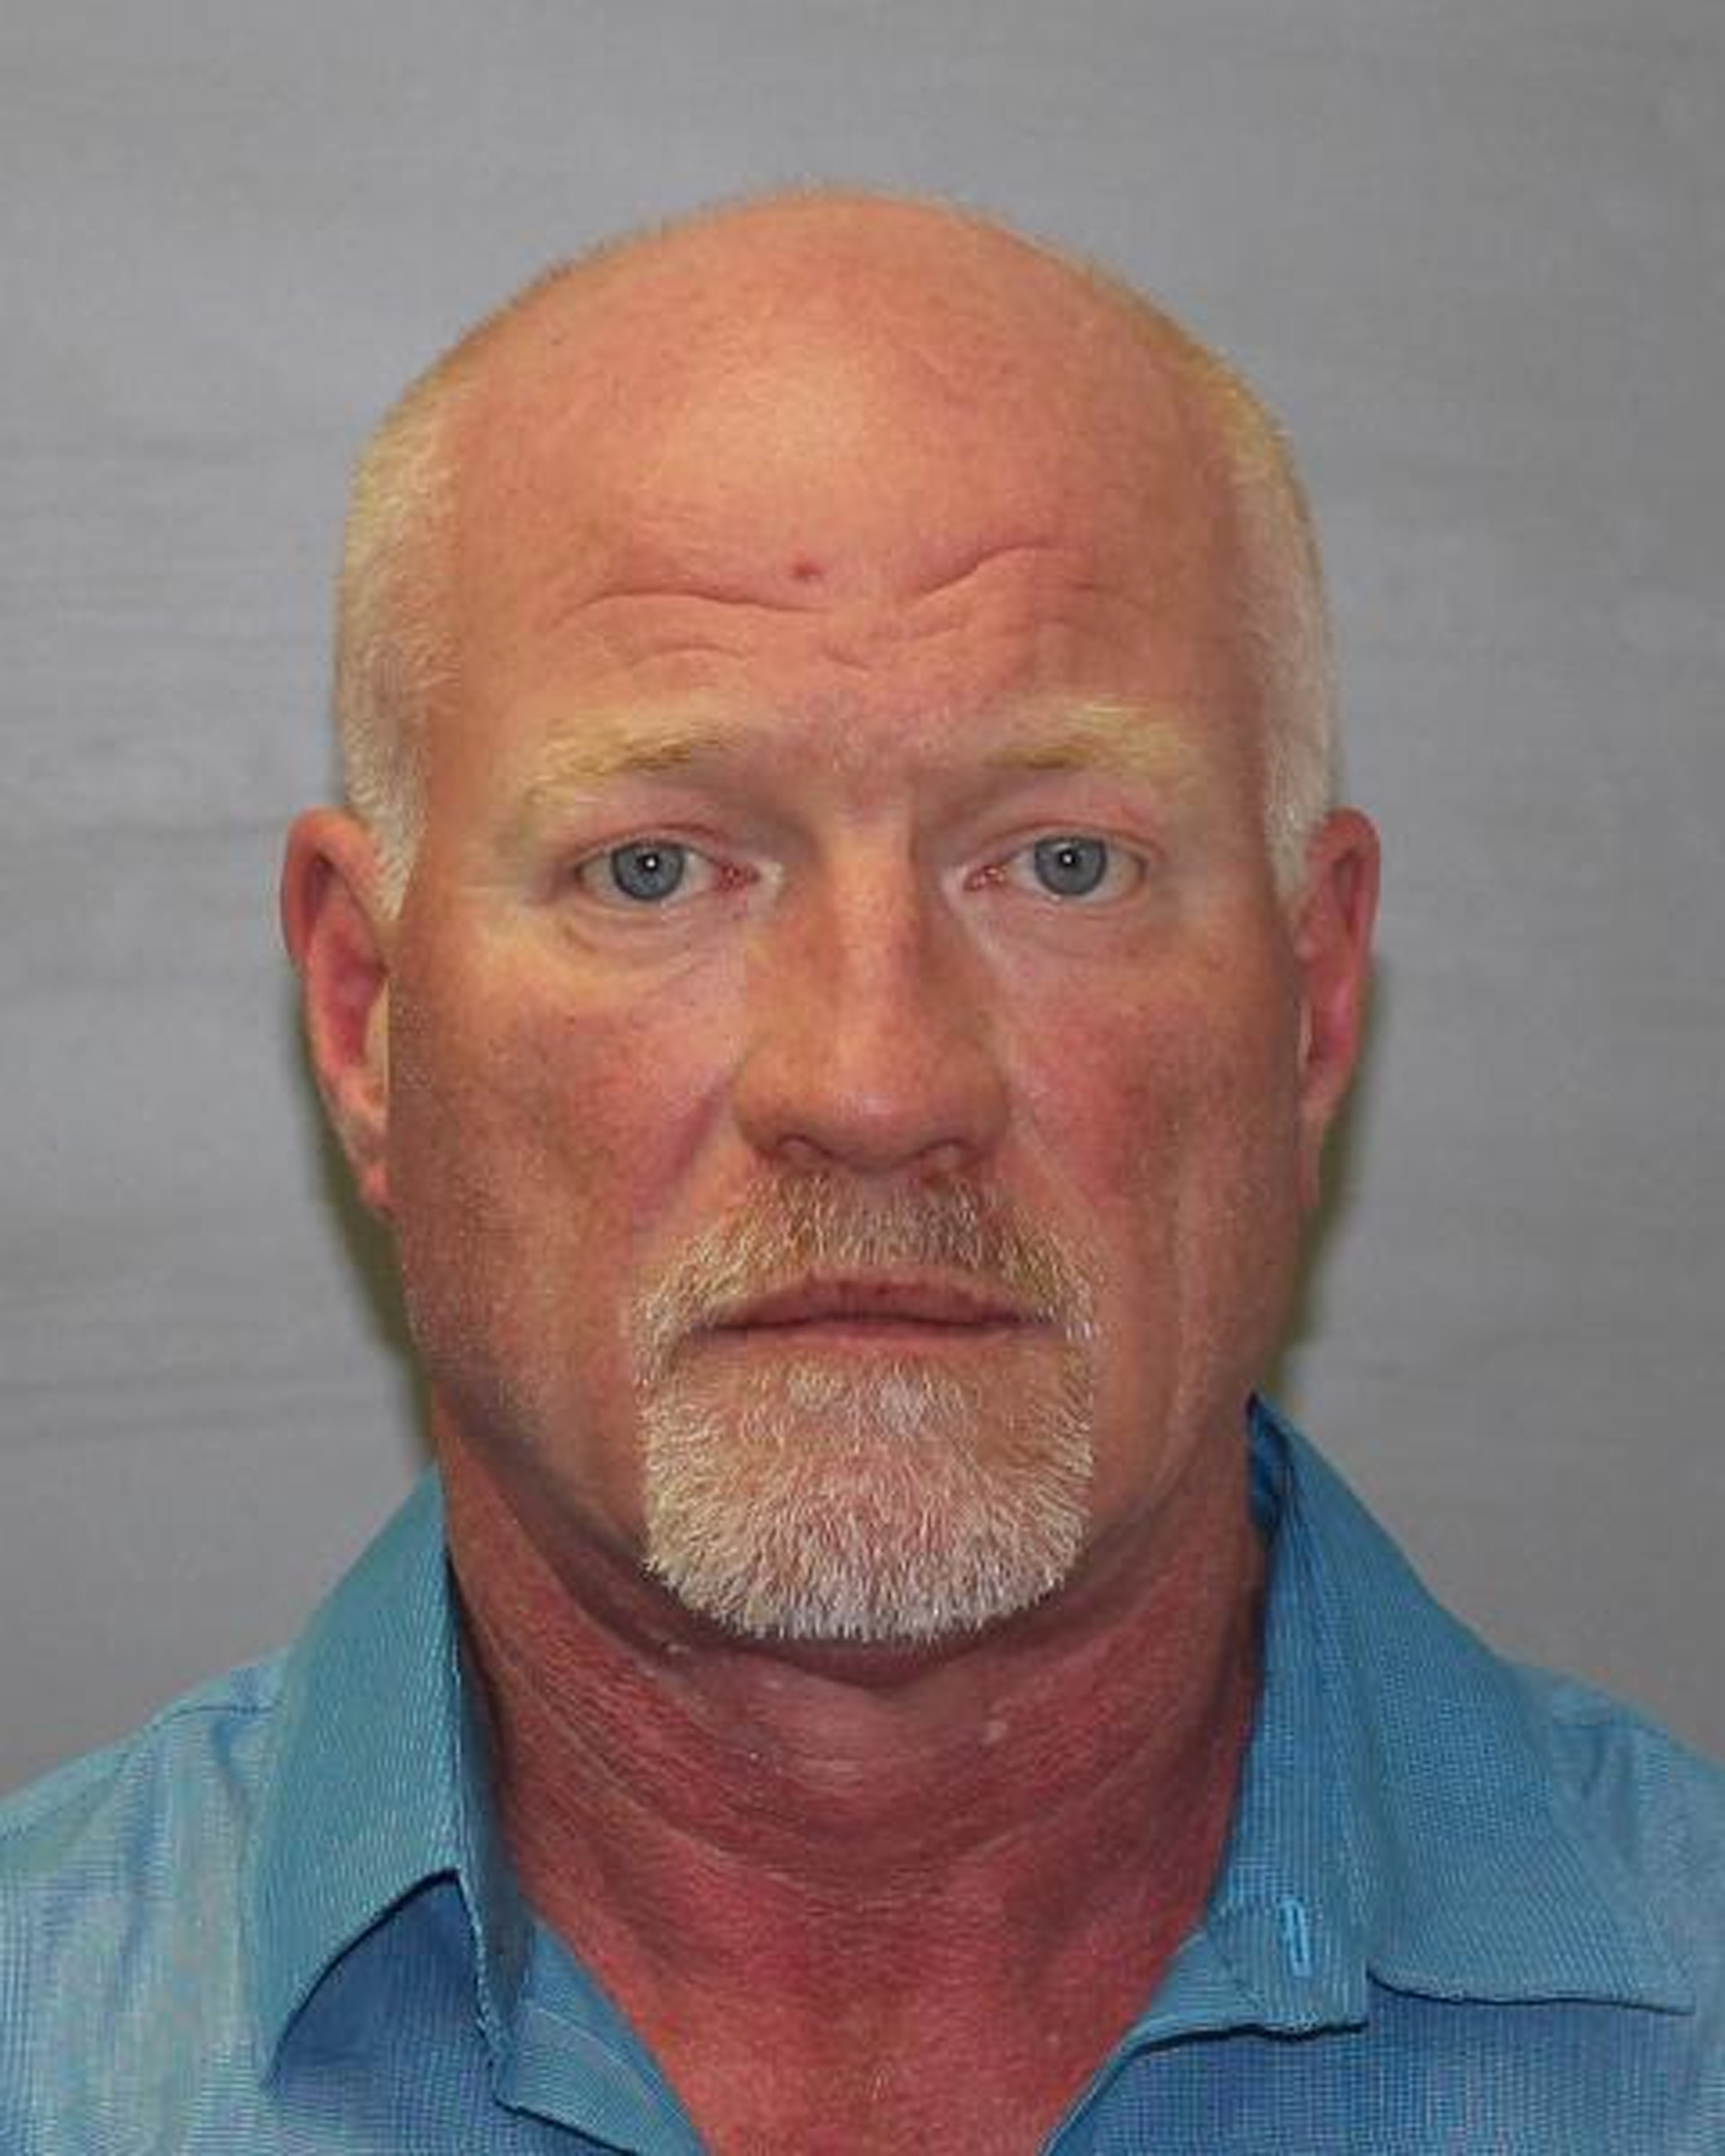 In this handout photo provided by the New York State Police, Clinton Correctional Facility Correction Officer Gene Palmer, 57, of Dannemora, NY poses for a mugshot photo, June 24, 2015.